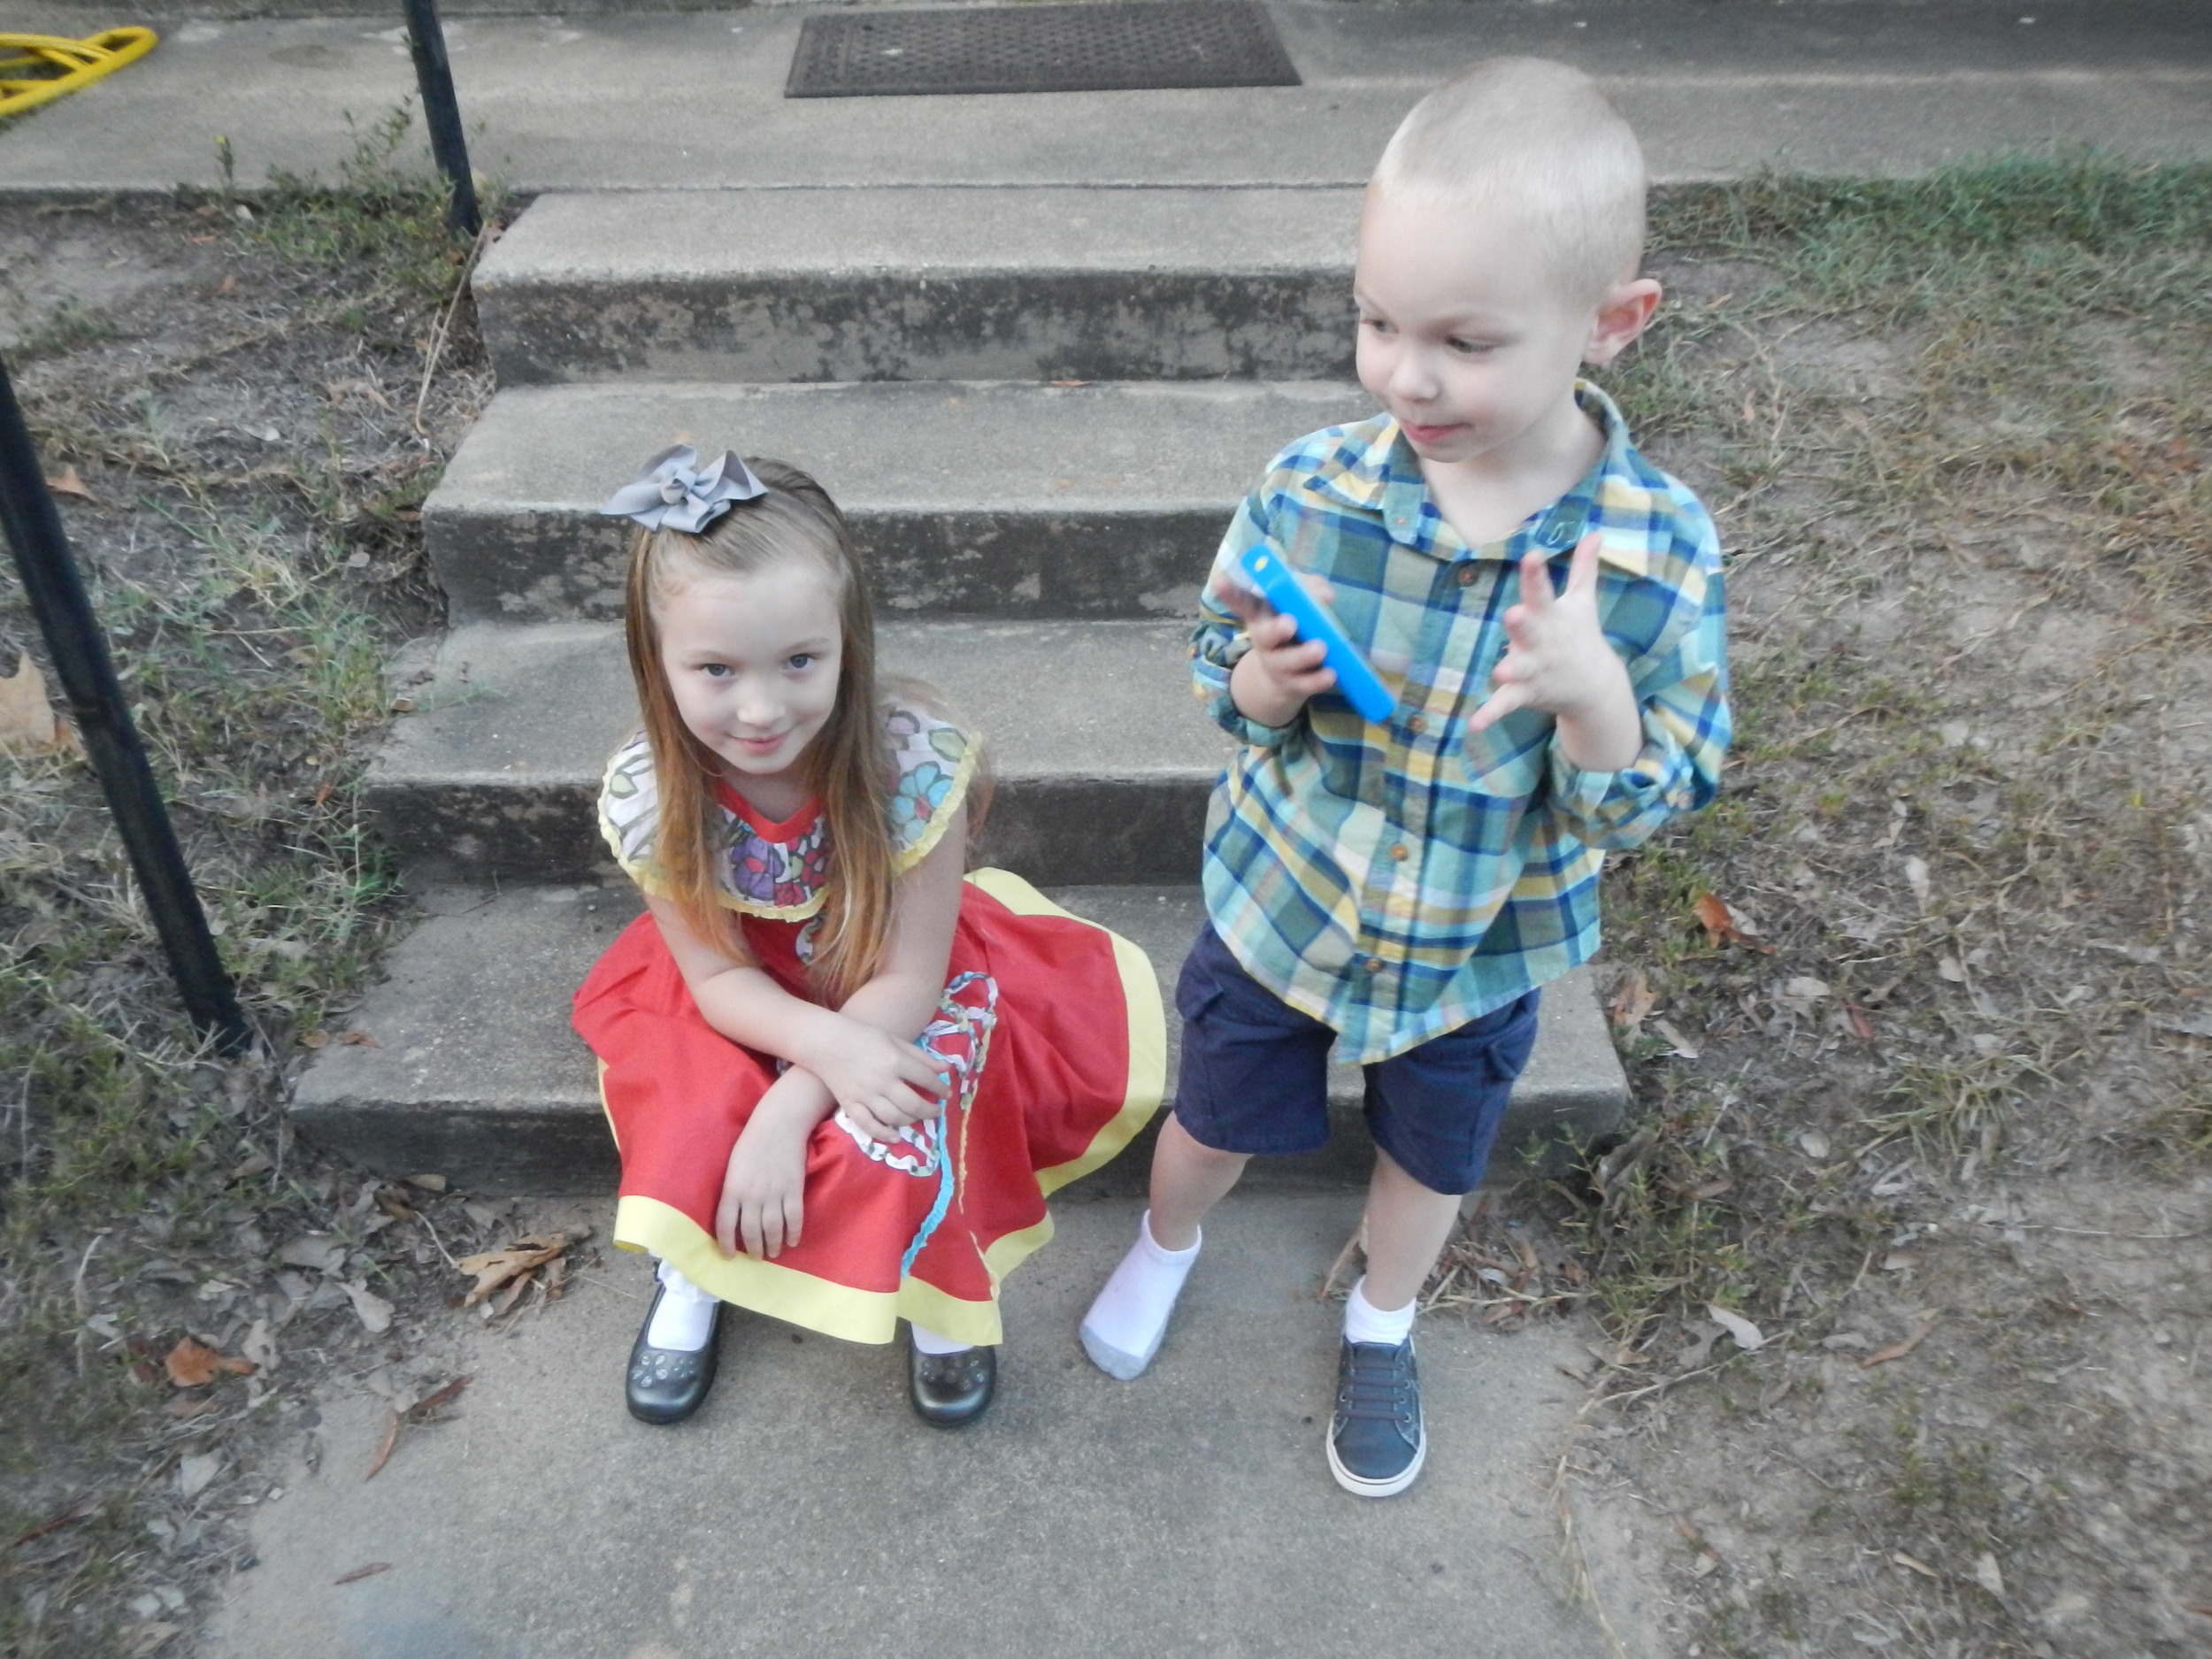 Oh dear, Ezra has already lost a shoe!  Now Grace is giving me the Mom-has-taken-a-bazillion-pictures-already look.